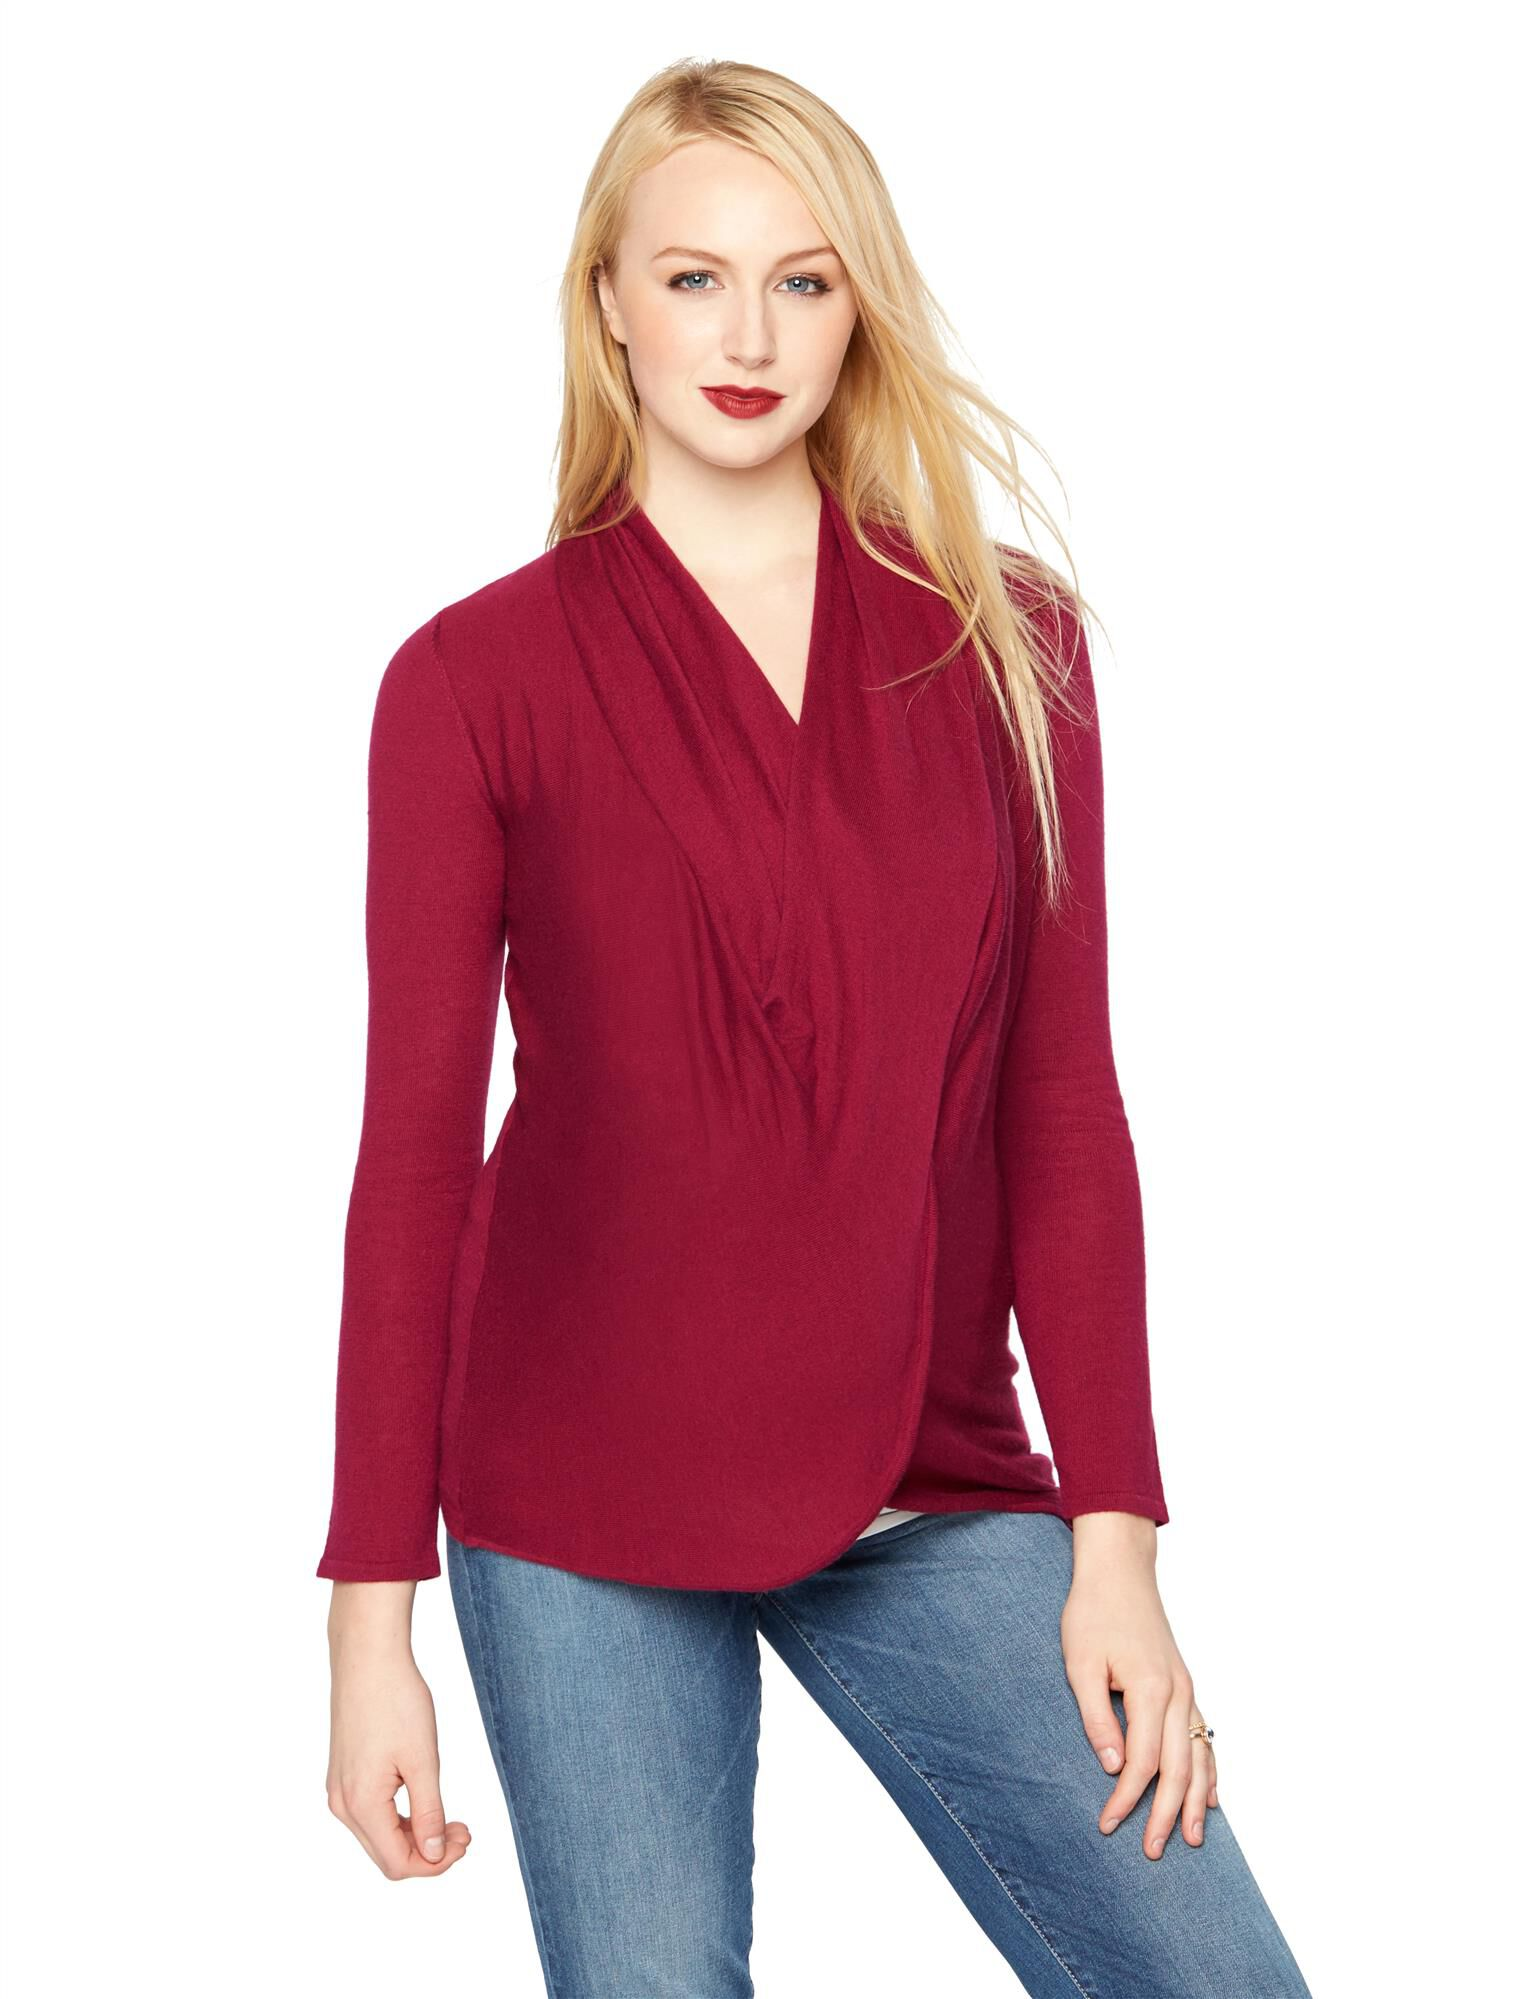 Long Pull Over Cross Front Nursing Top